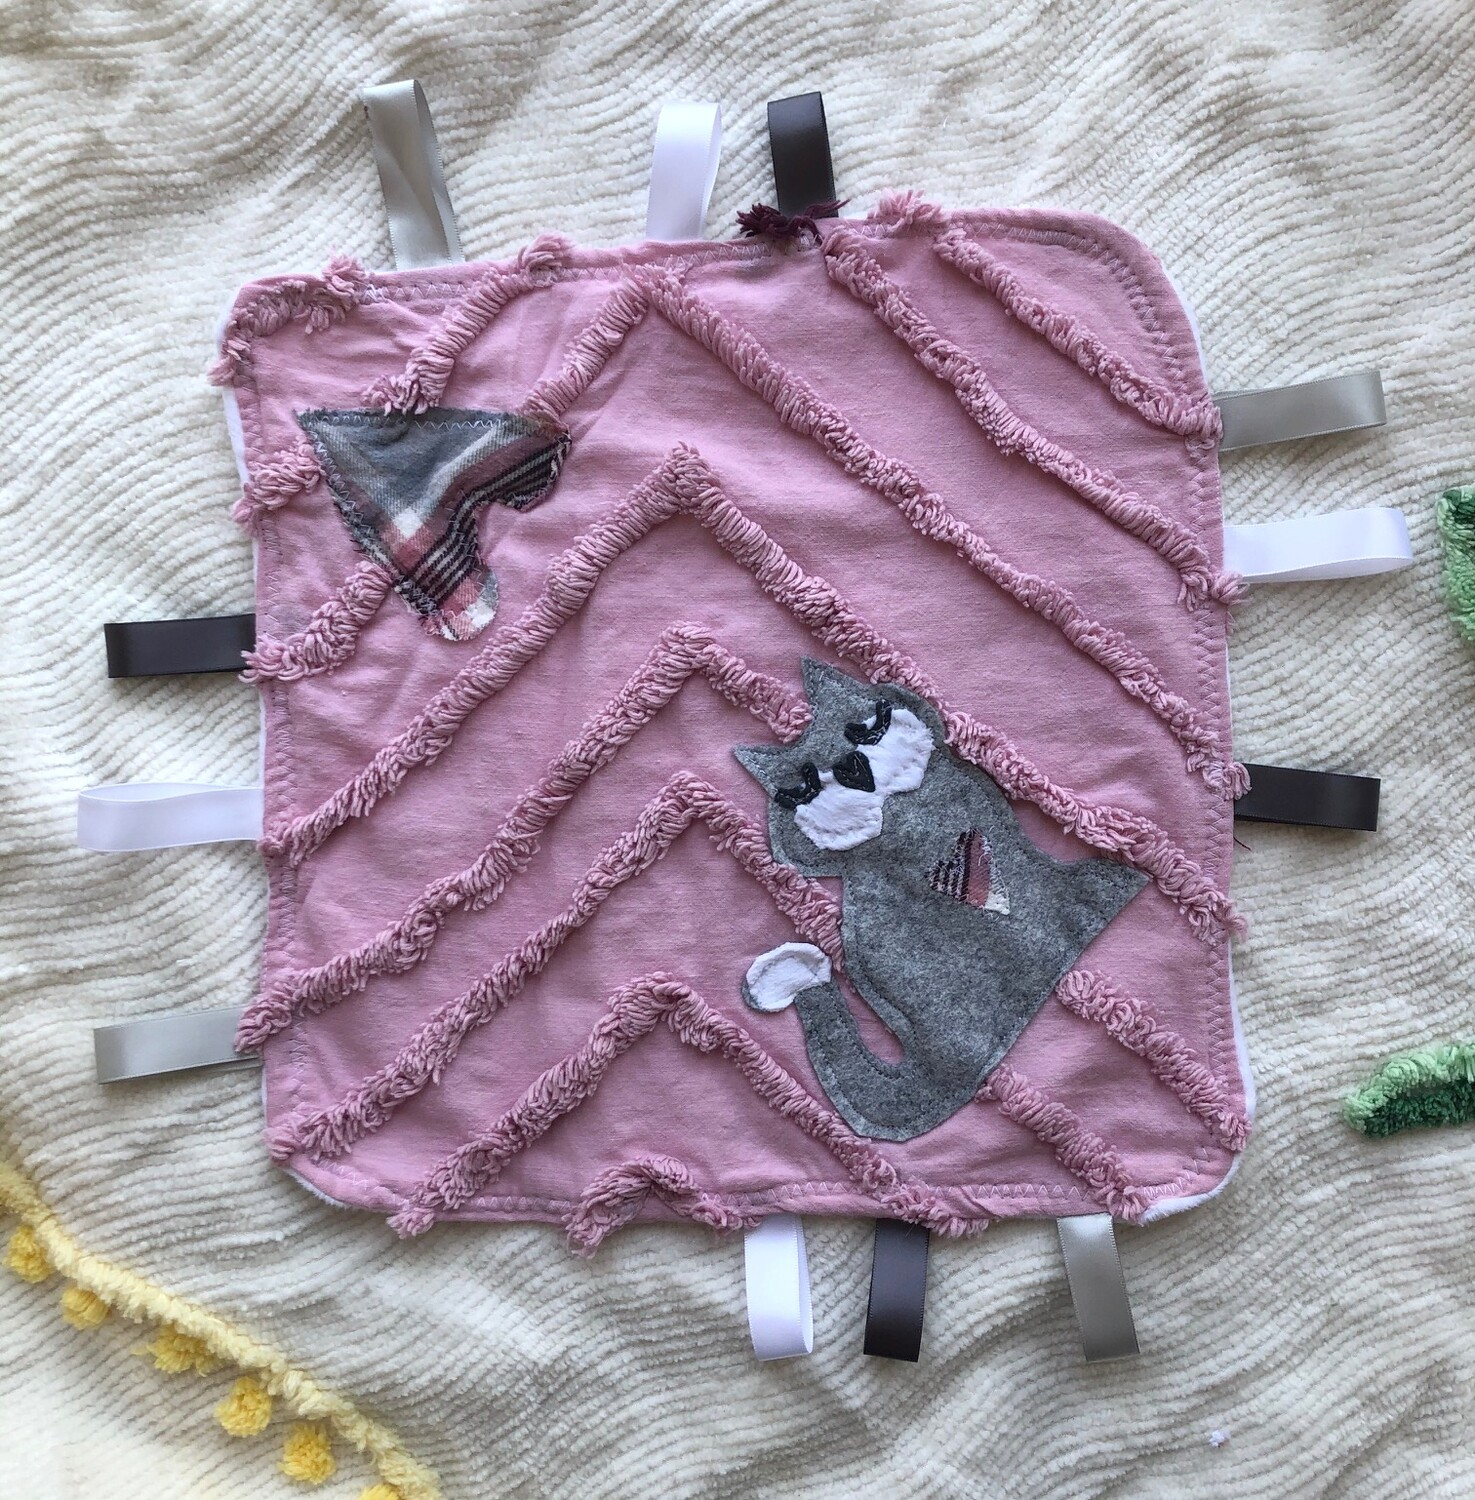 Moxie & Zab - Tag-a-Long Blanket ~ Grey Kitty on Vintage Pink Chenille